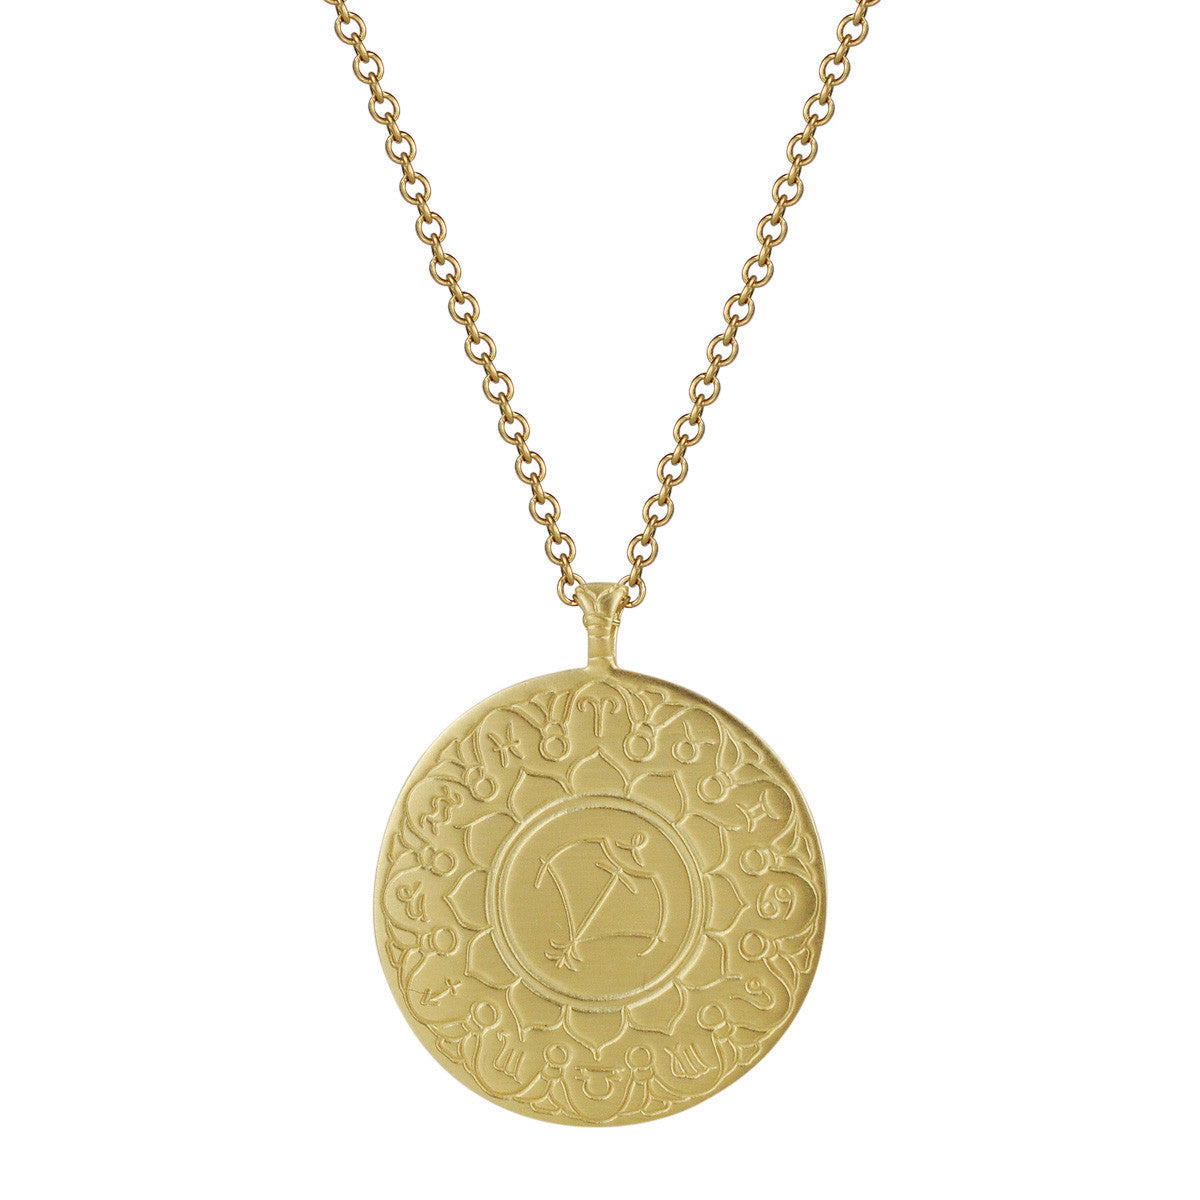 18K Gold Large Sagittarius Astrology Pendant